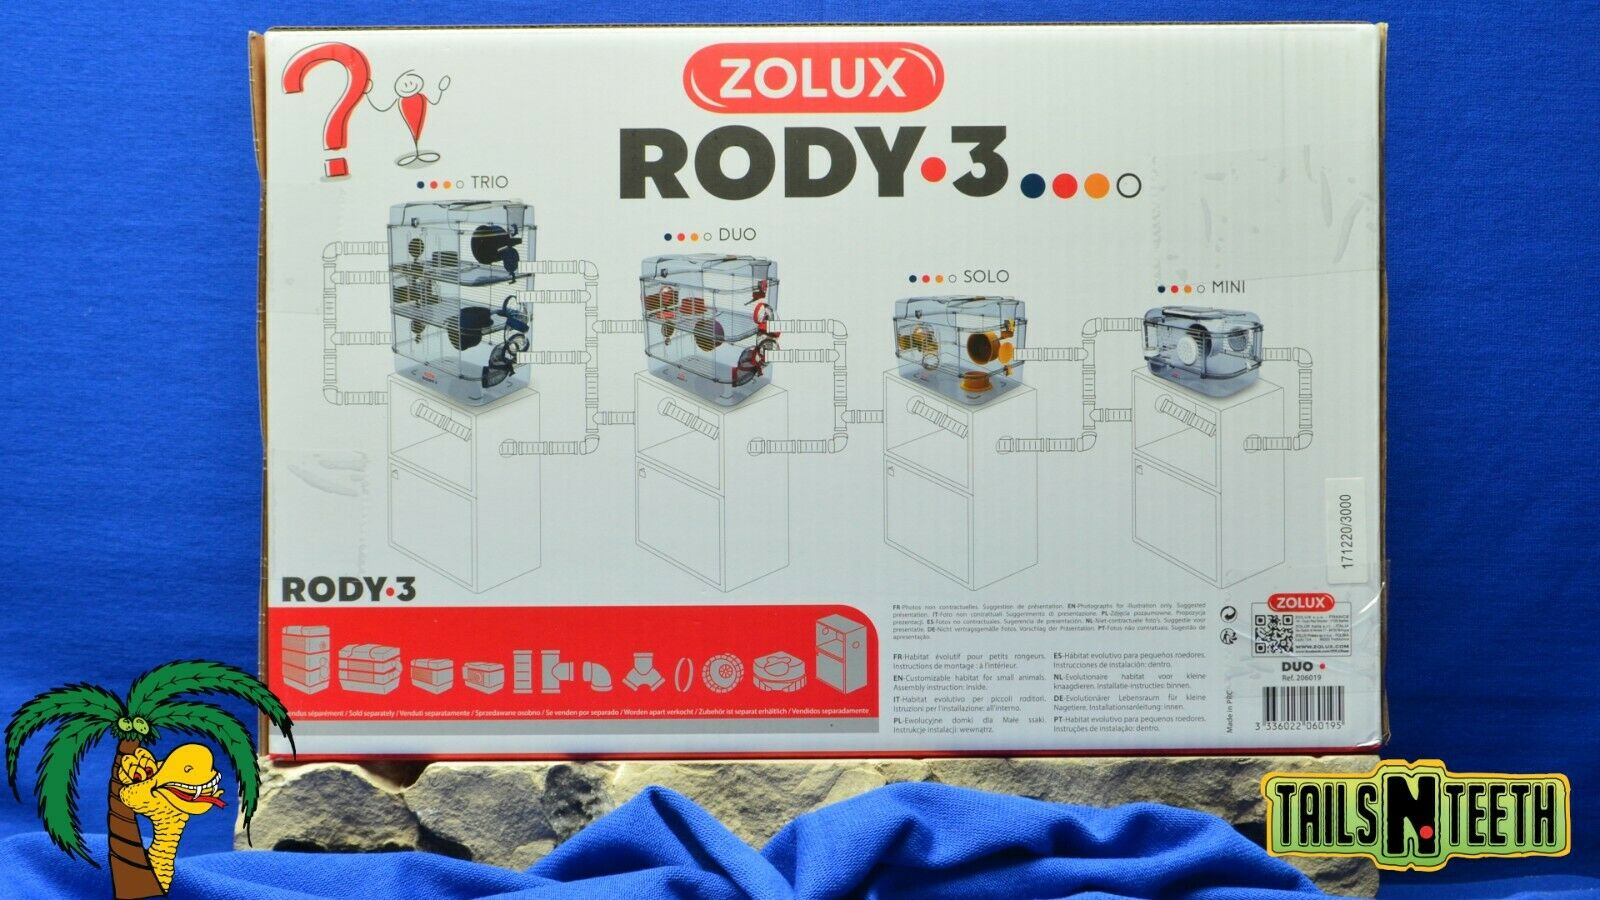 Zolux RODY-3 DUO Cage For Hamsters Gerbils Mice - Red - InterConnecting Cages - CA$56.99